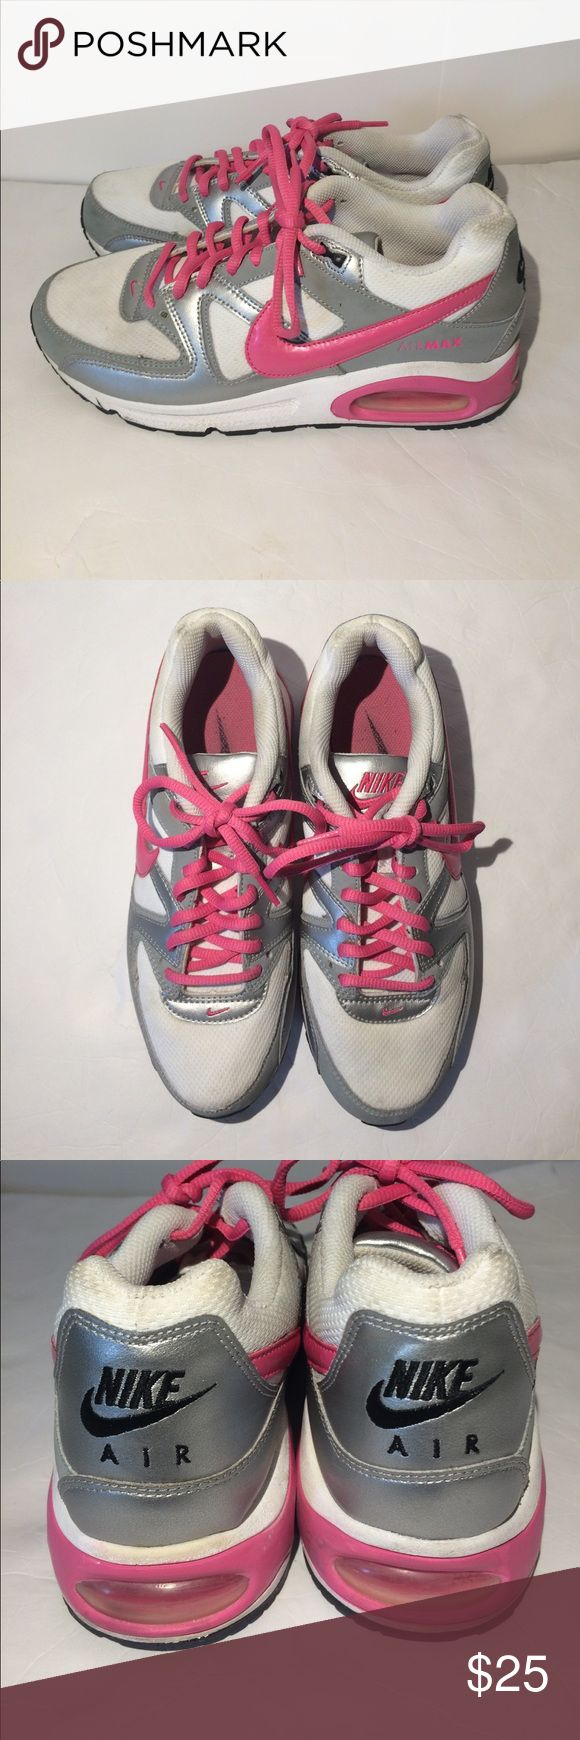 Nike air max command shoes 407626 youth/girls 7Y Nike air max command athletic shoes. Size 7Y. Pink-white. Gently preworn. Soles in very nice condition. Thanks. Nike Shoes Sneakers